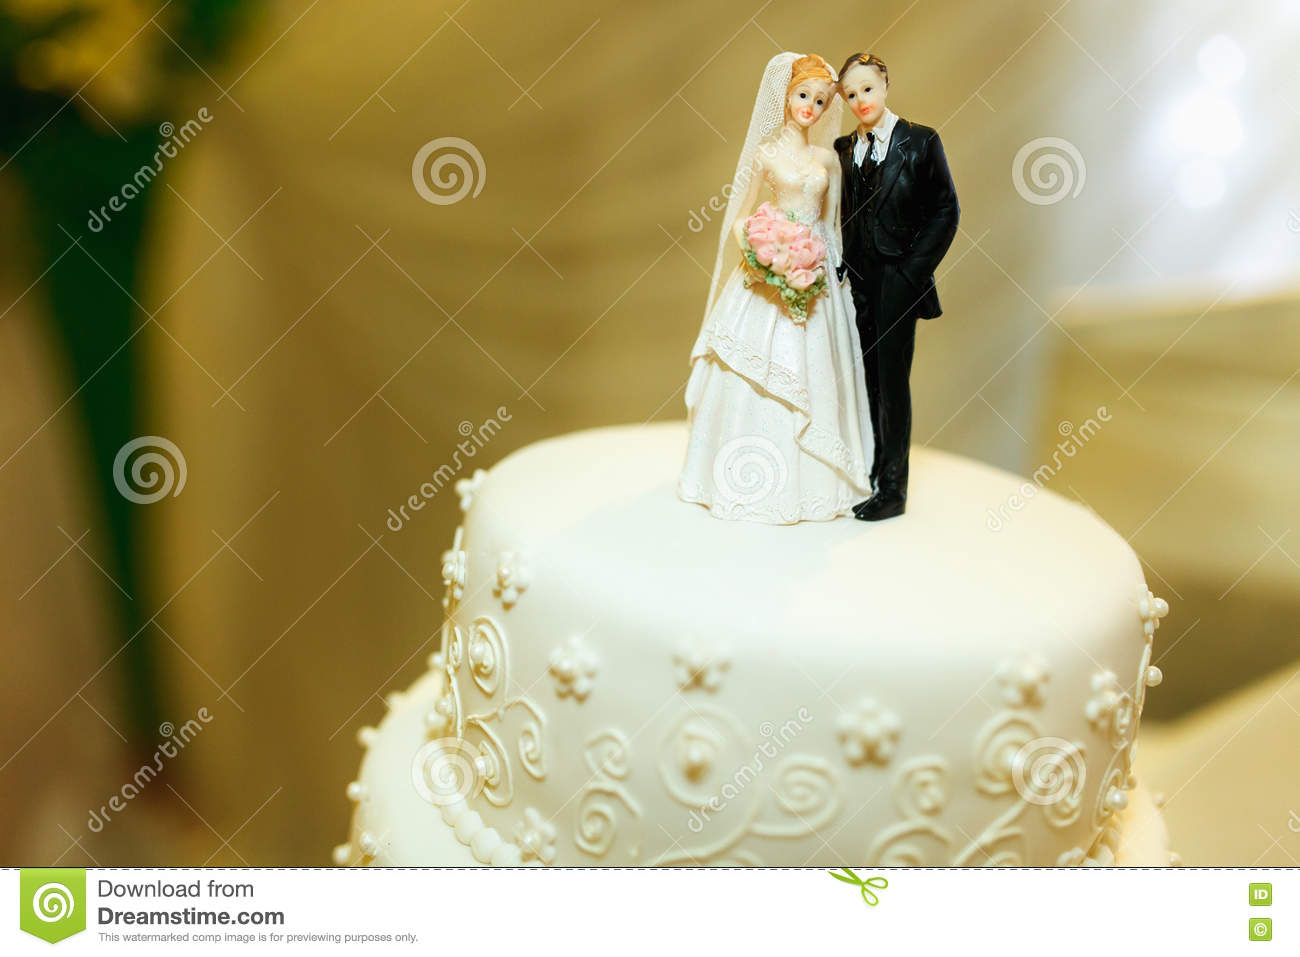 Pretty Figures Of Newlyweds As An Element Of Wedding Cake Decora ...